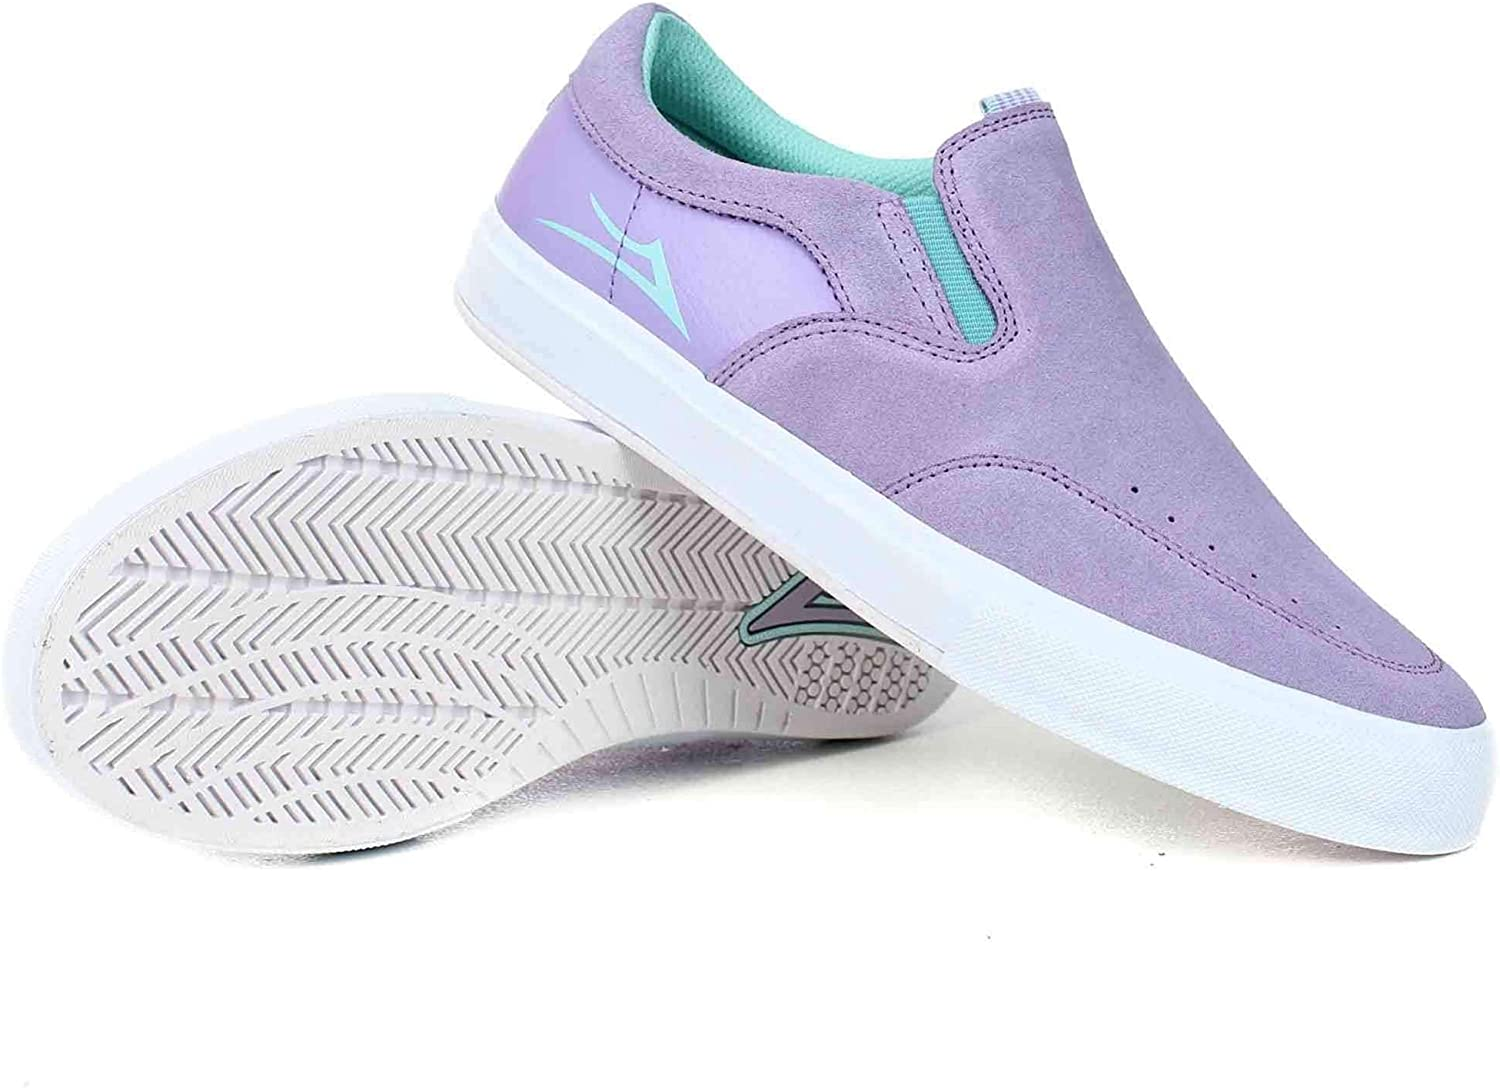 Lakai x Nico Owen VLK Slip On in Lavender Suede   New Mens Casual shoes